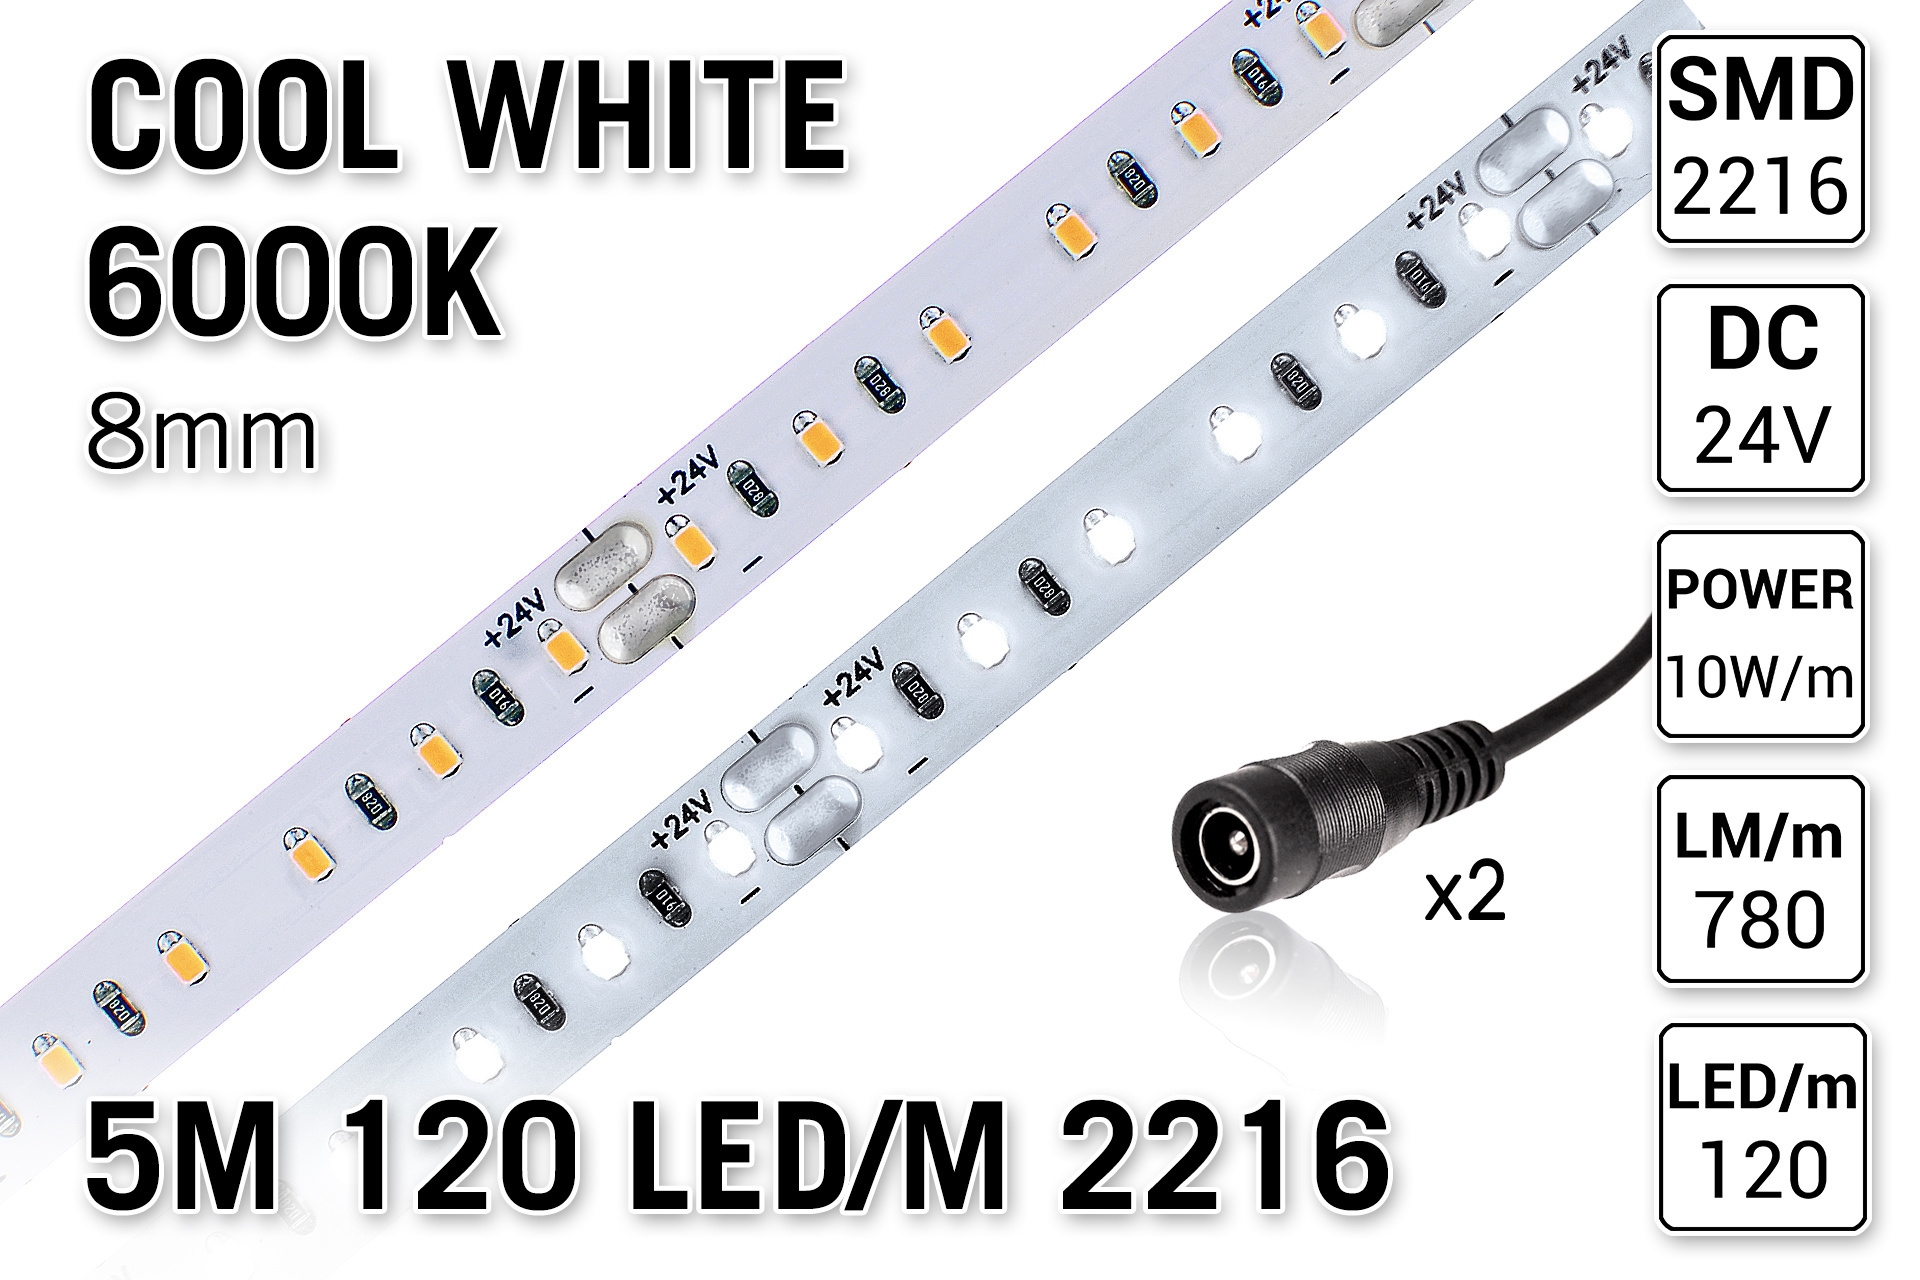 AppLamp ProLine PRO LINE 6000K Koud Wit Led Strip | 5m 120 Leds pm Type 2216 24V Losse Strip